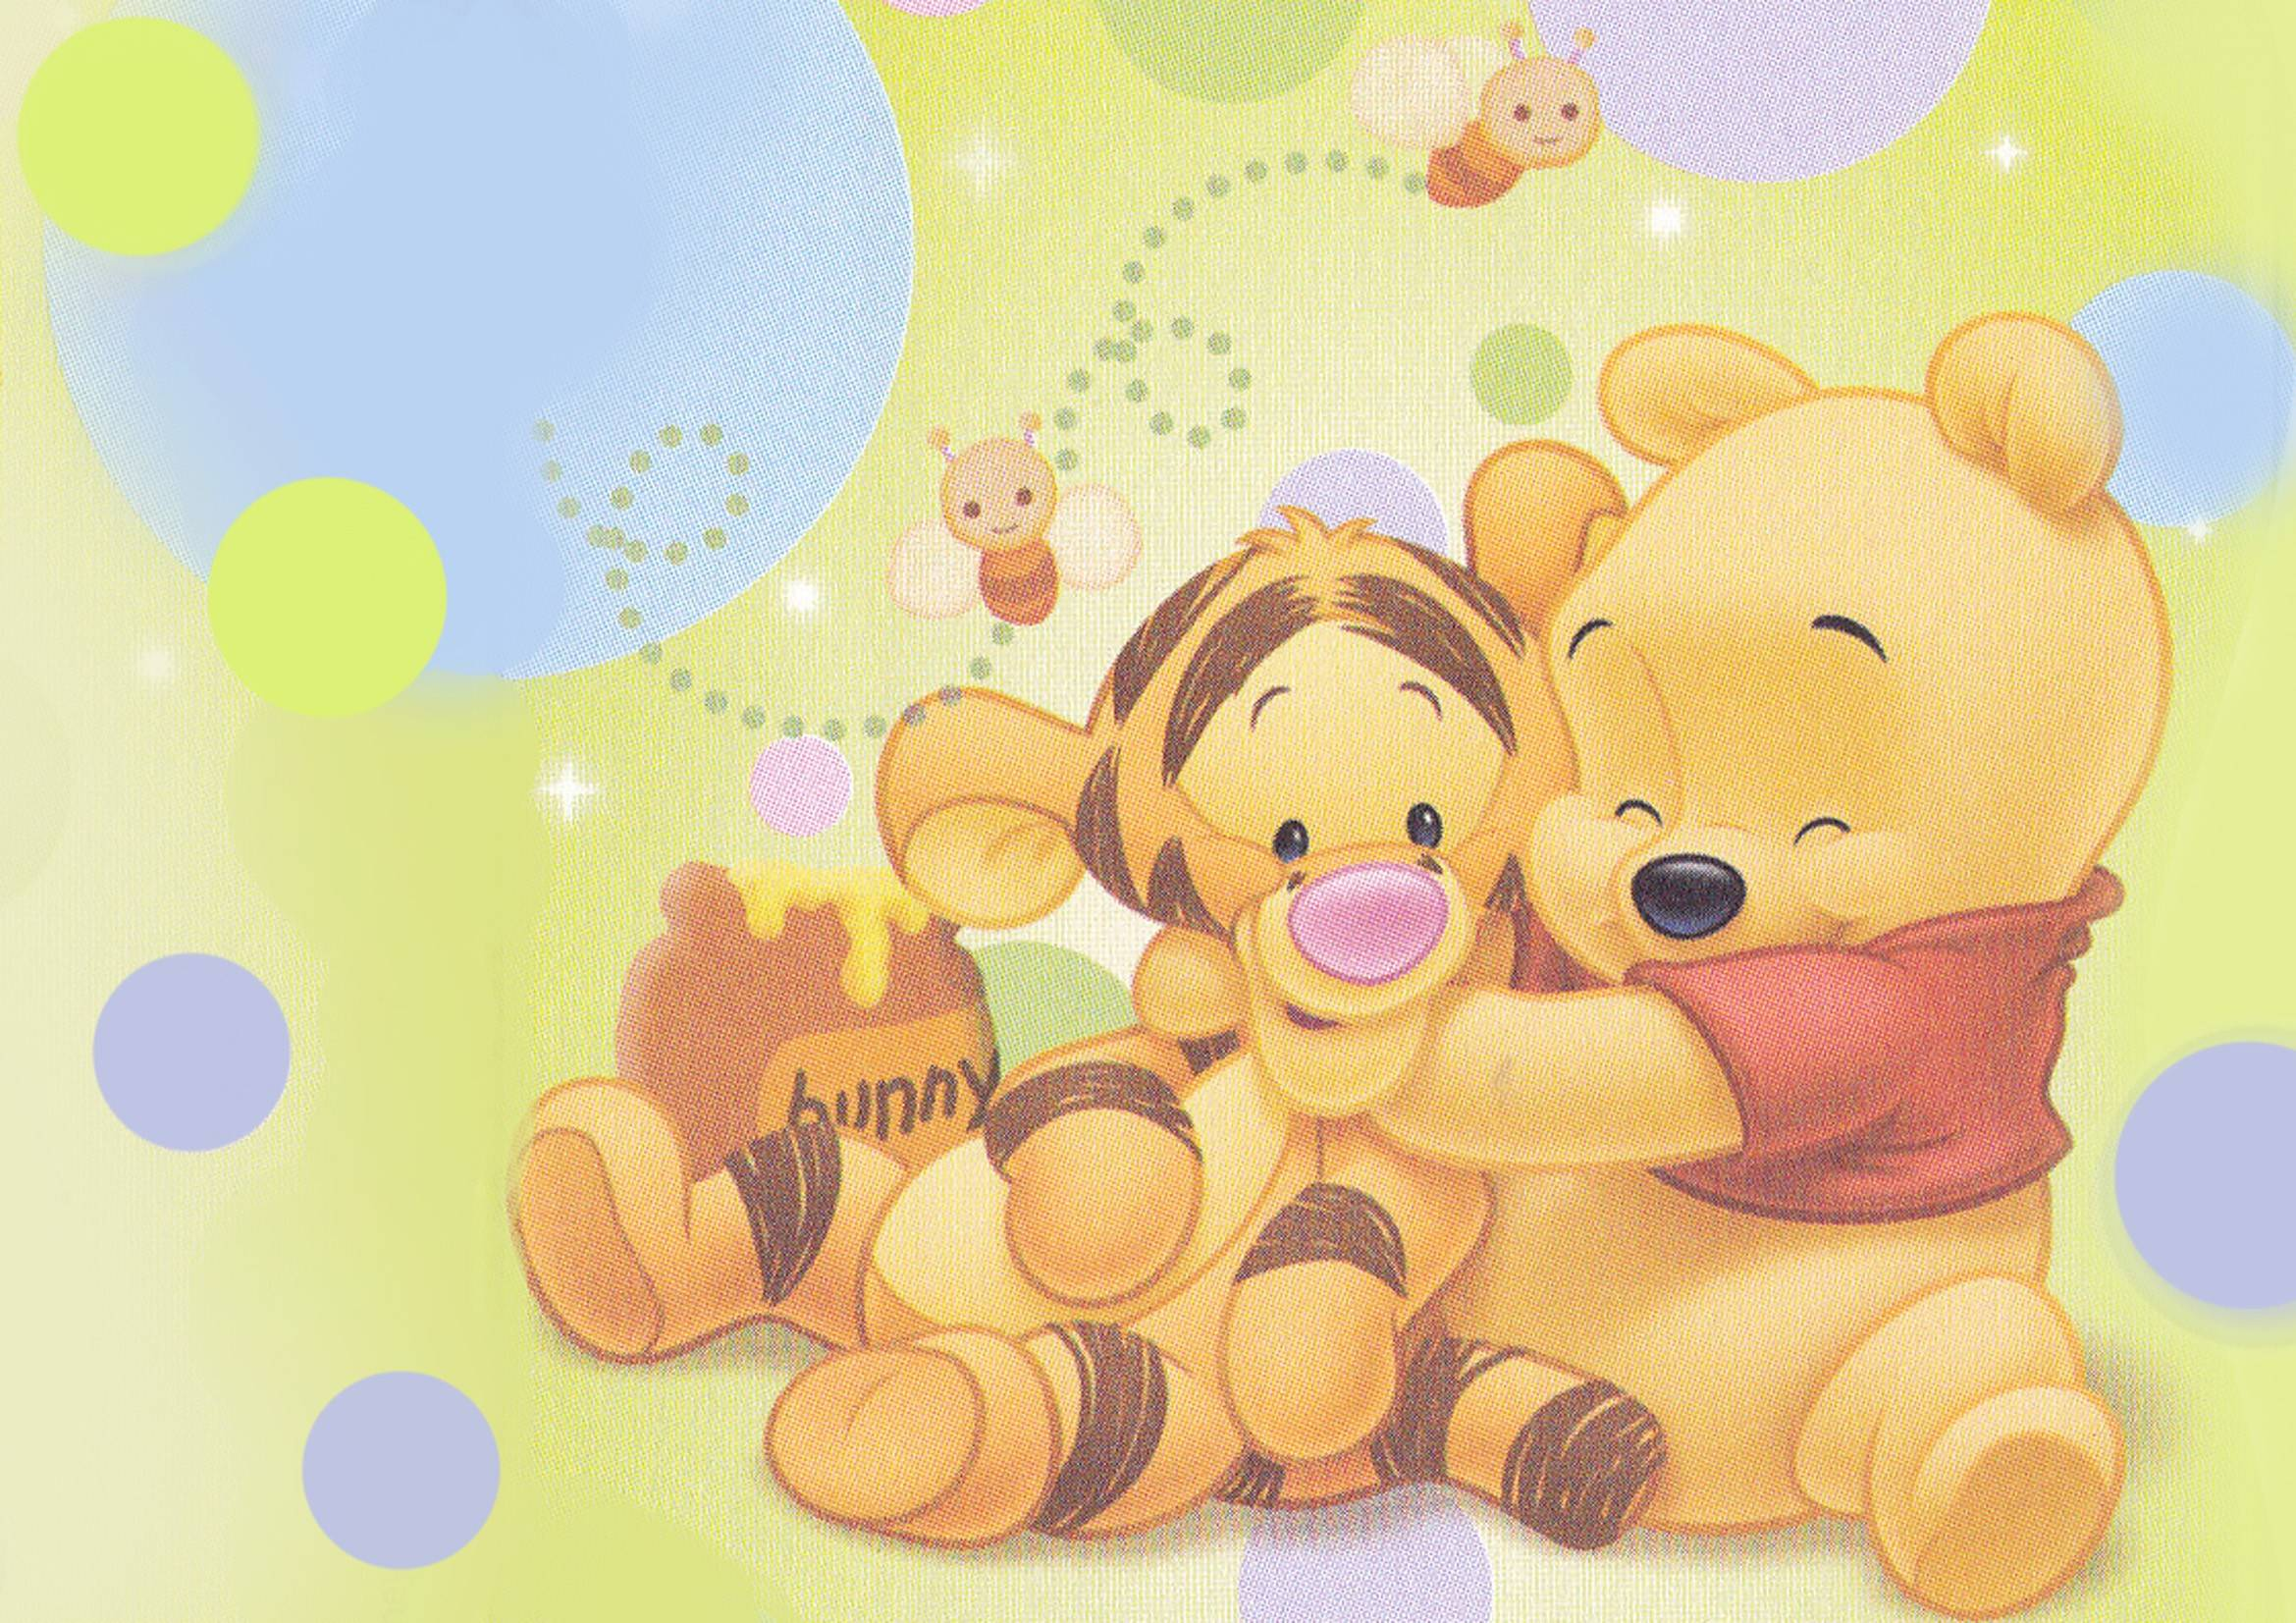 Pooh wallpapers wallpaper cave baby pooh wallpaper baby pooh photo 30438319 fanpop voltagebd Gallery